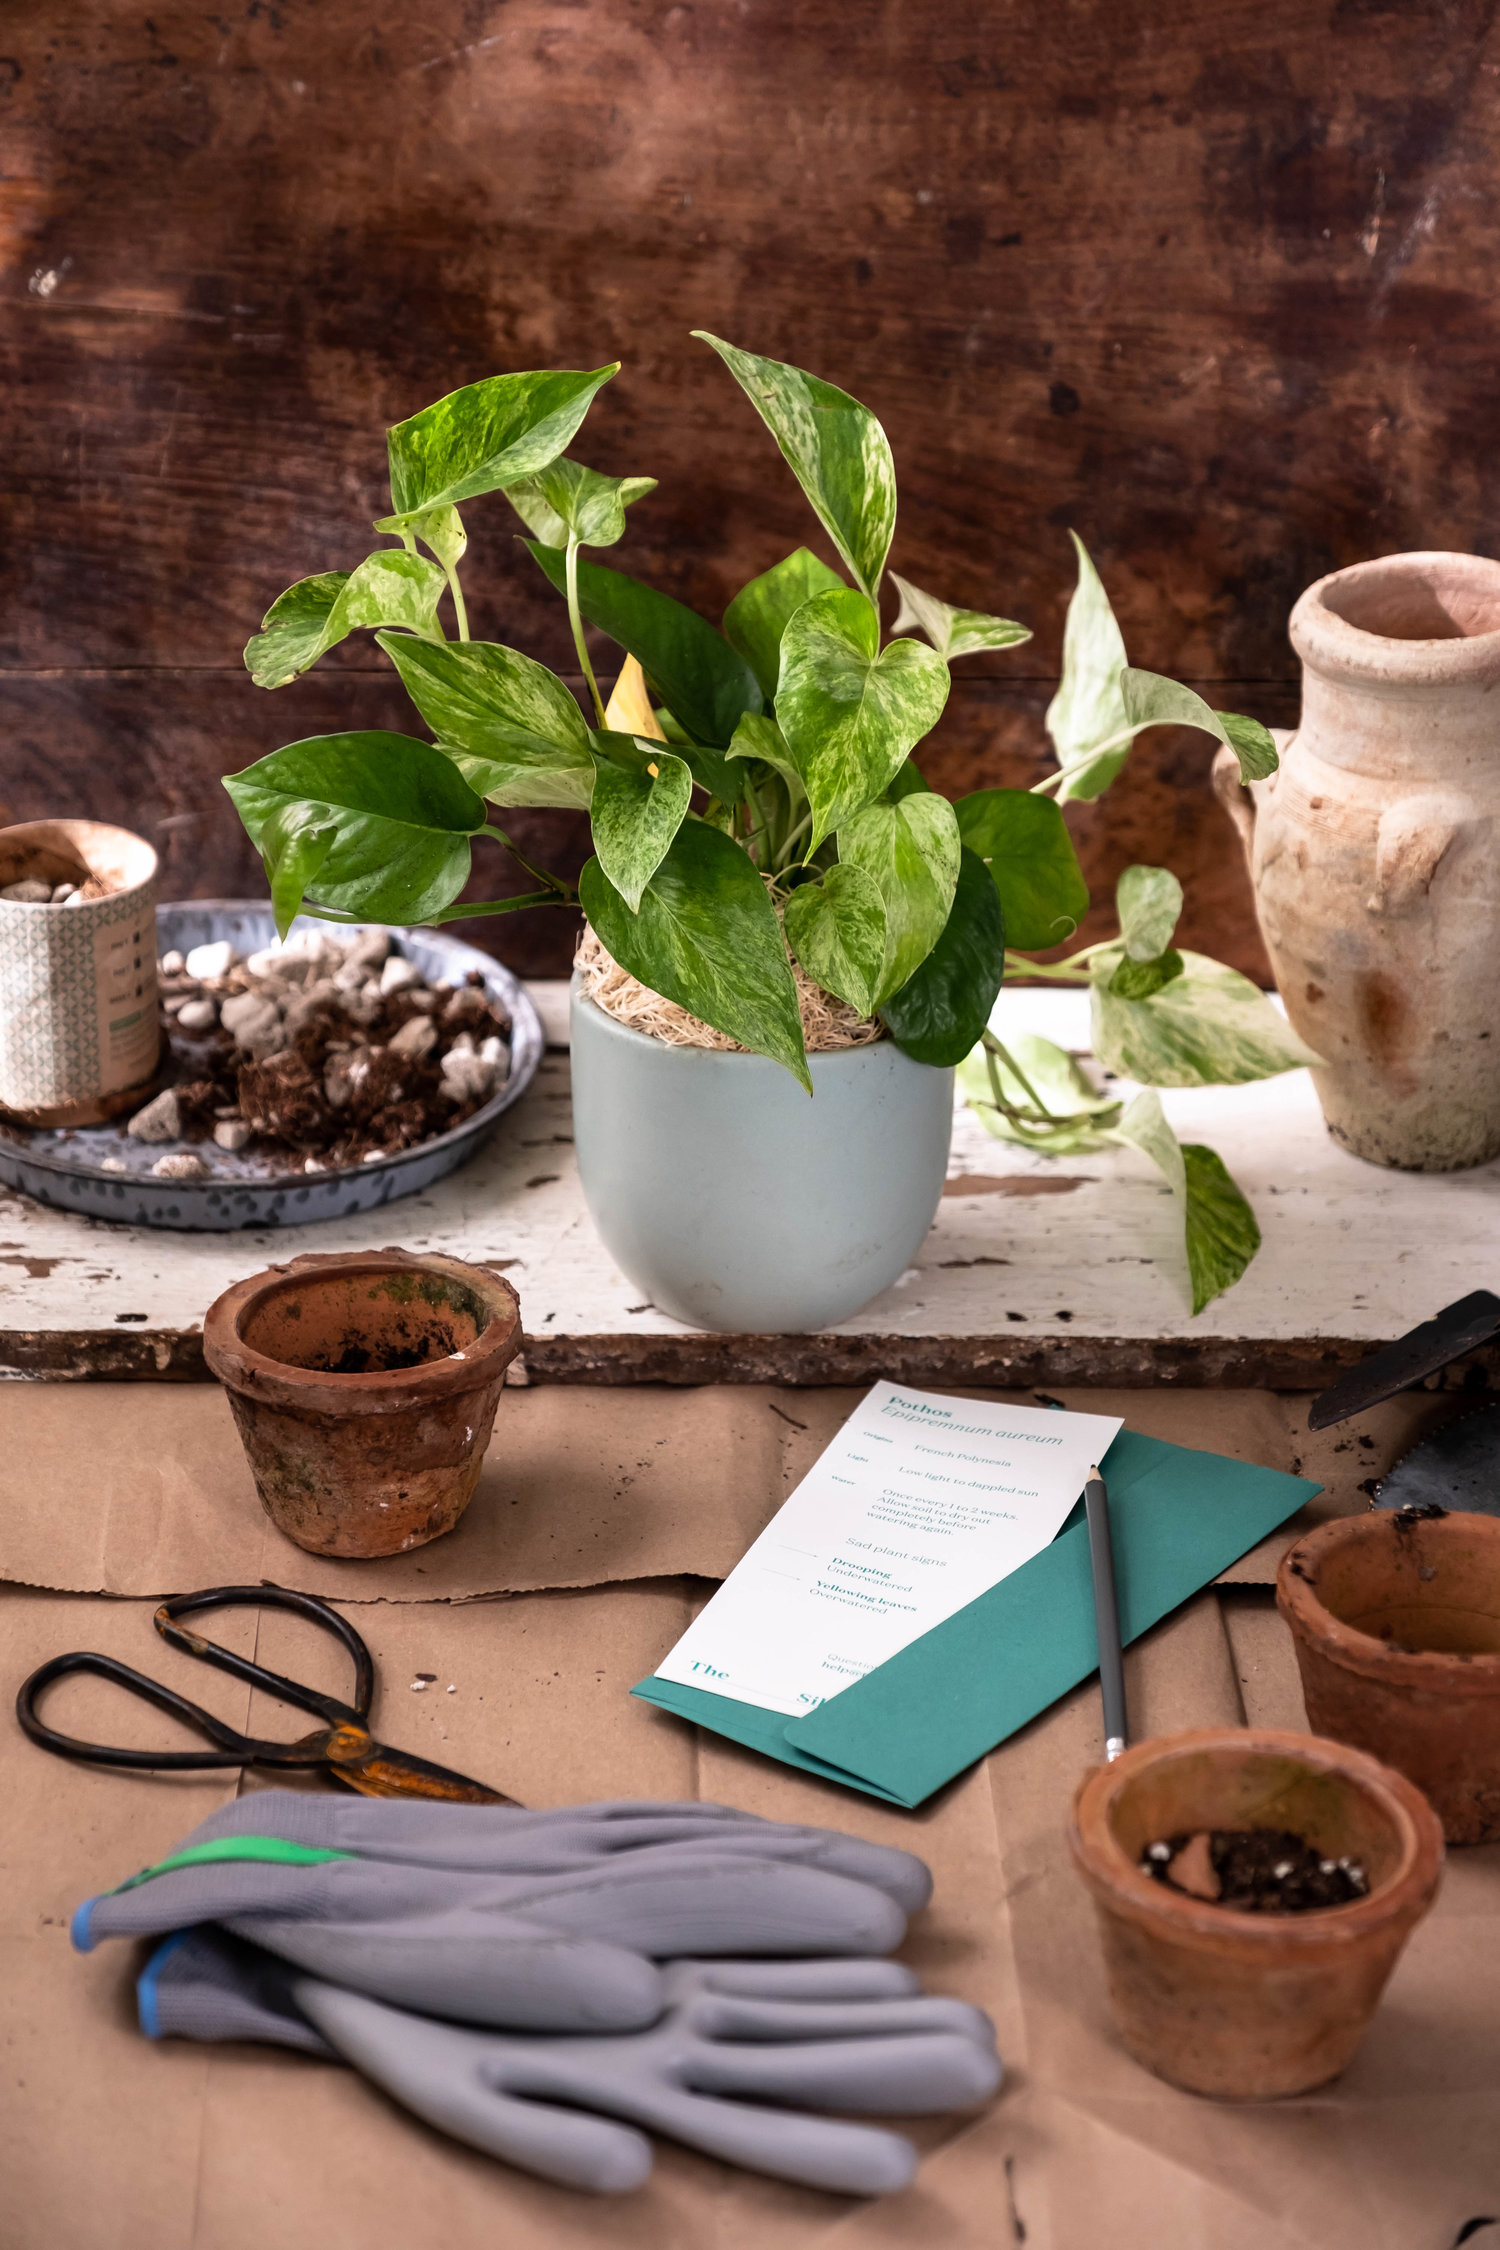 ROSE & IVY Journal Holiday Gifting Help Them Cultivate a Green Thumb The Sill Subscription